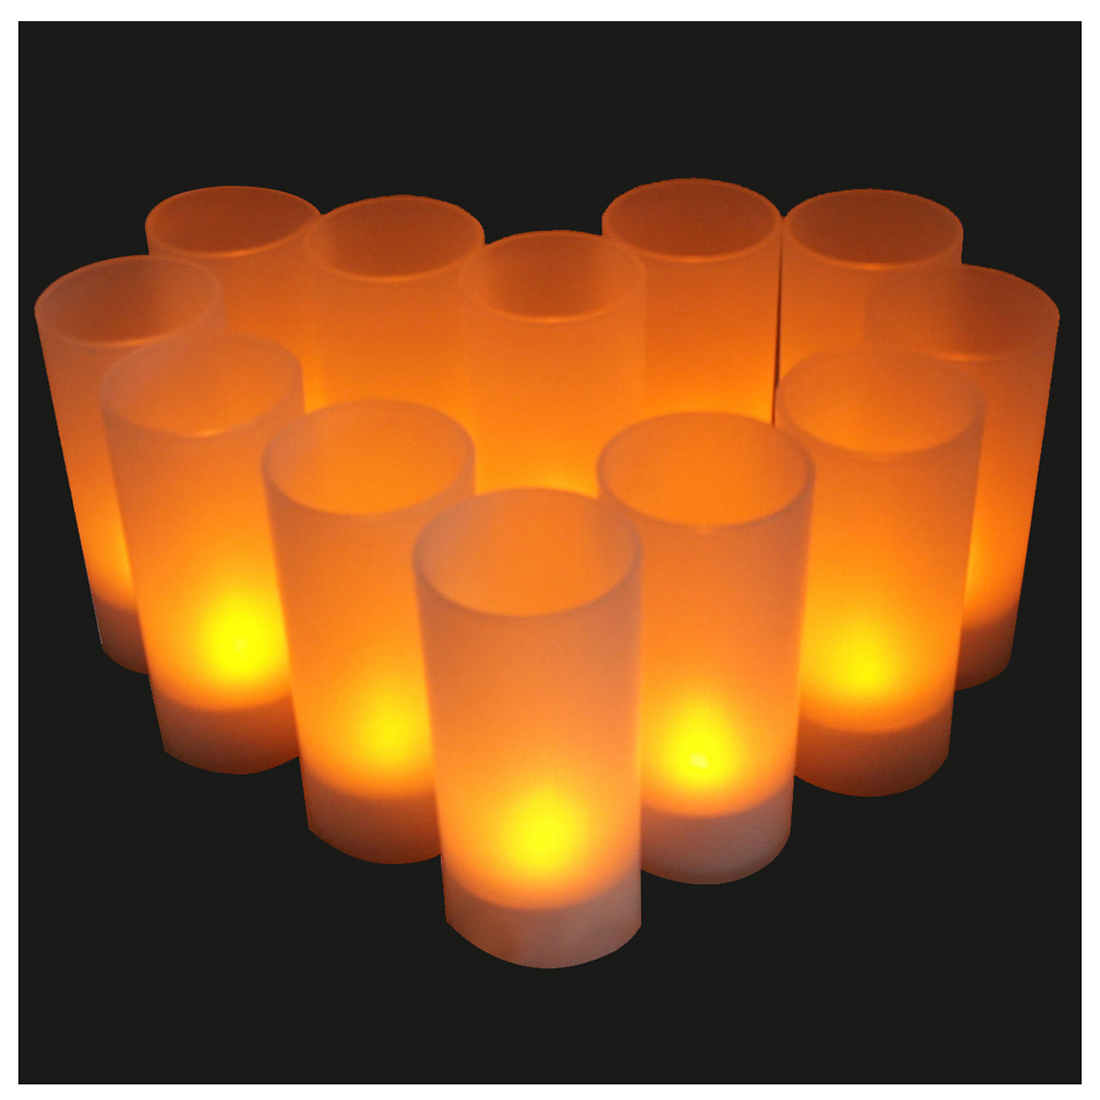 12X Flameless Rechargeable LED Tea Light Flickering Amber Tealights Candles US12X Flameless Rechargeable LED Tea Light Flickering Amber Tealights Candles US